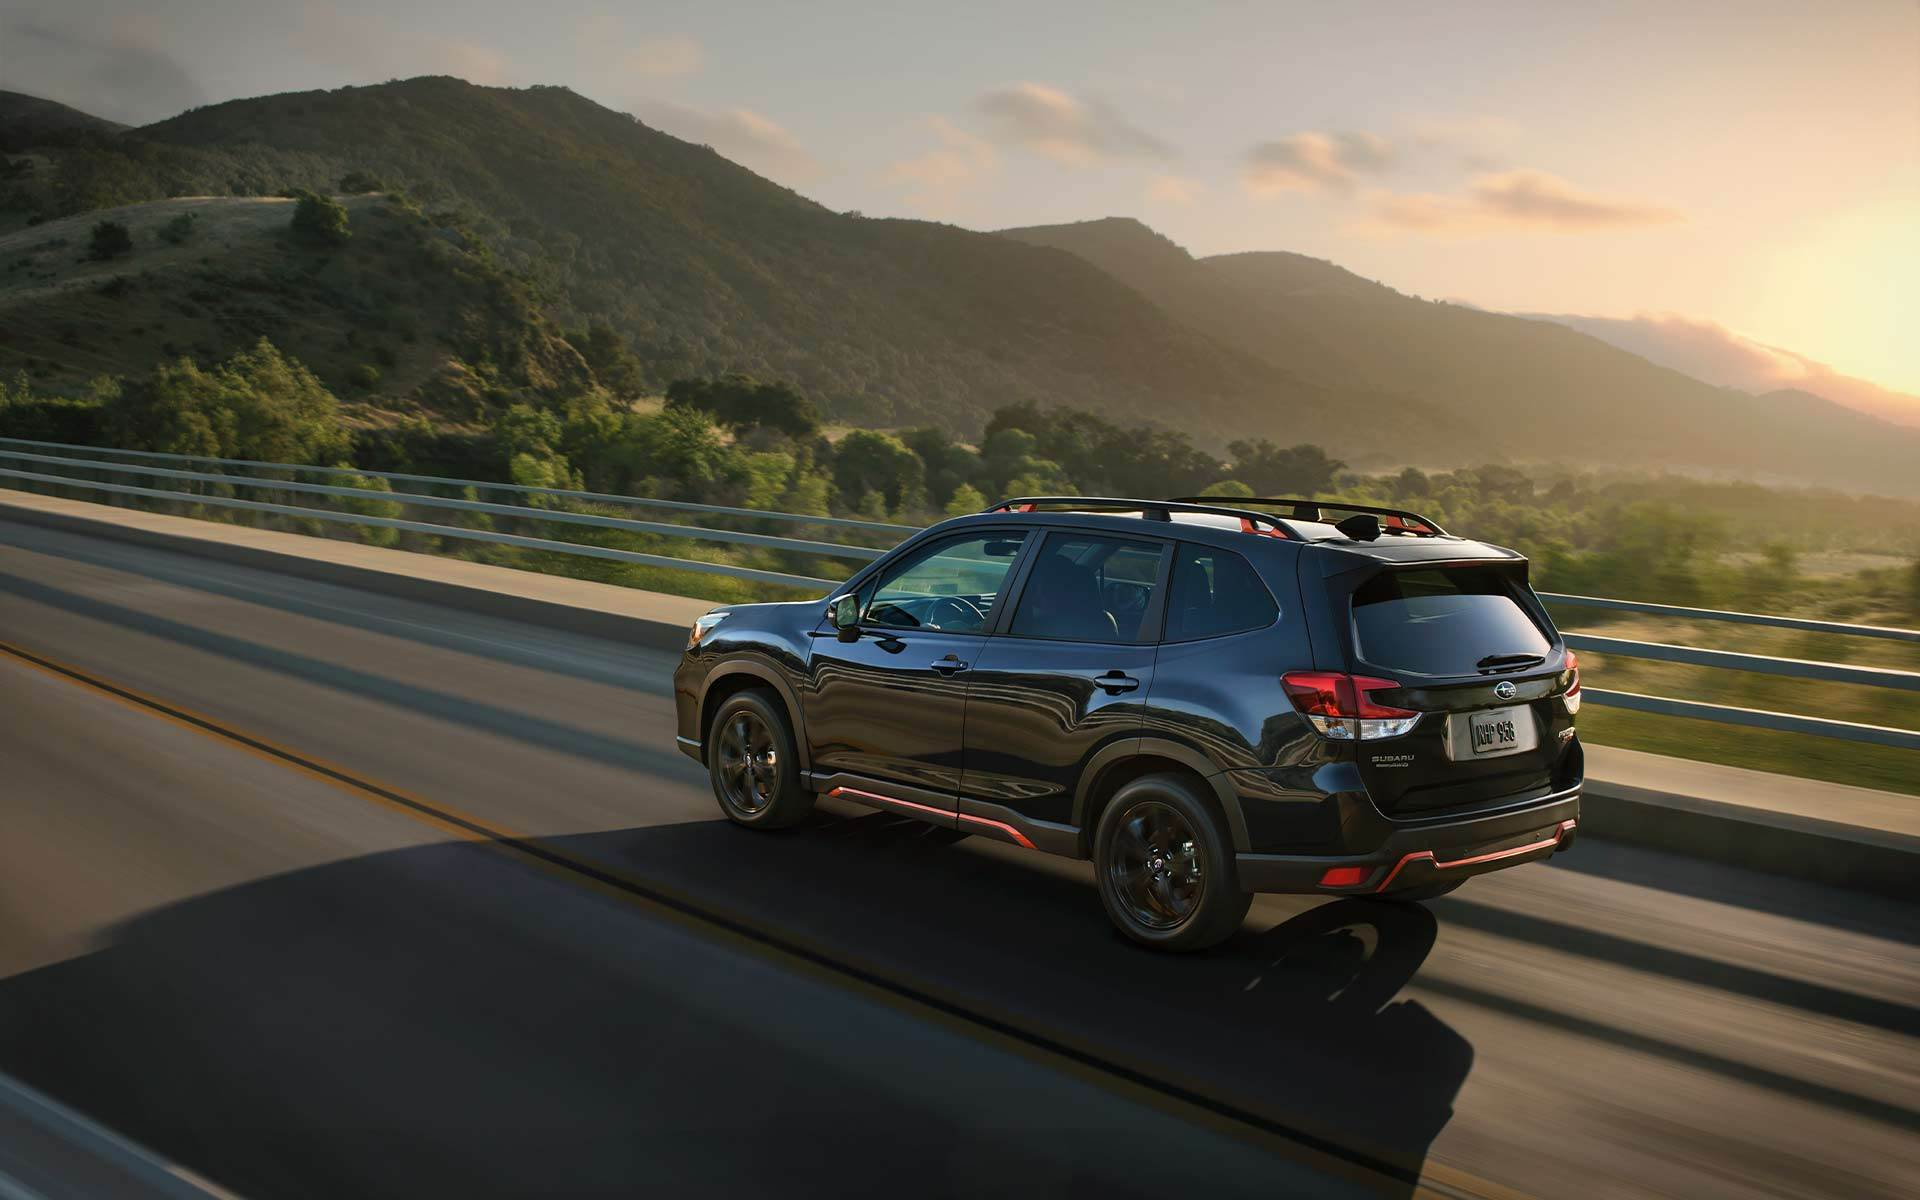 2020 Subaru Forester Rear Black Exterior Picture